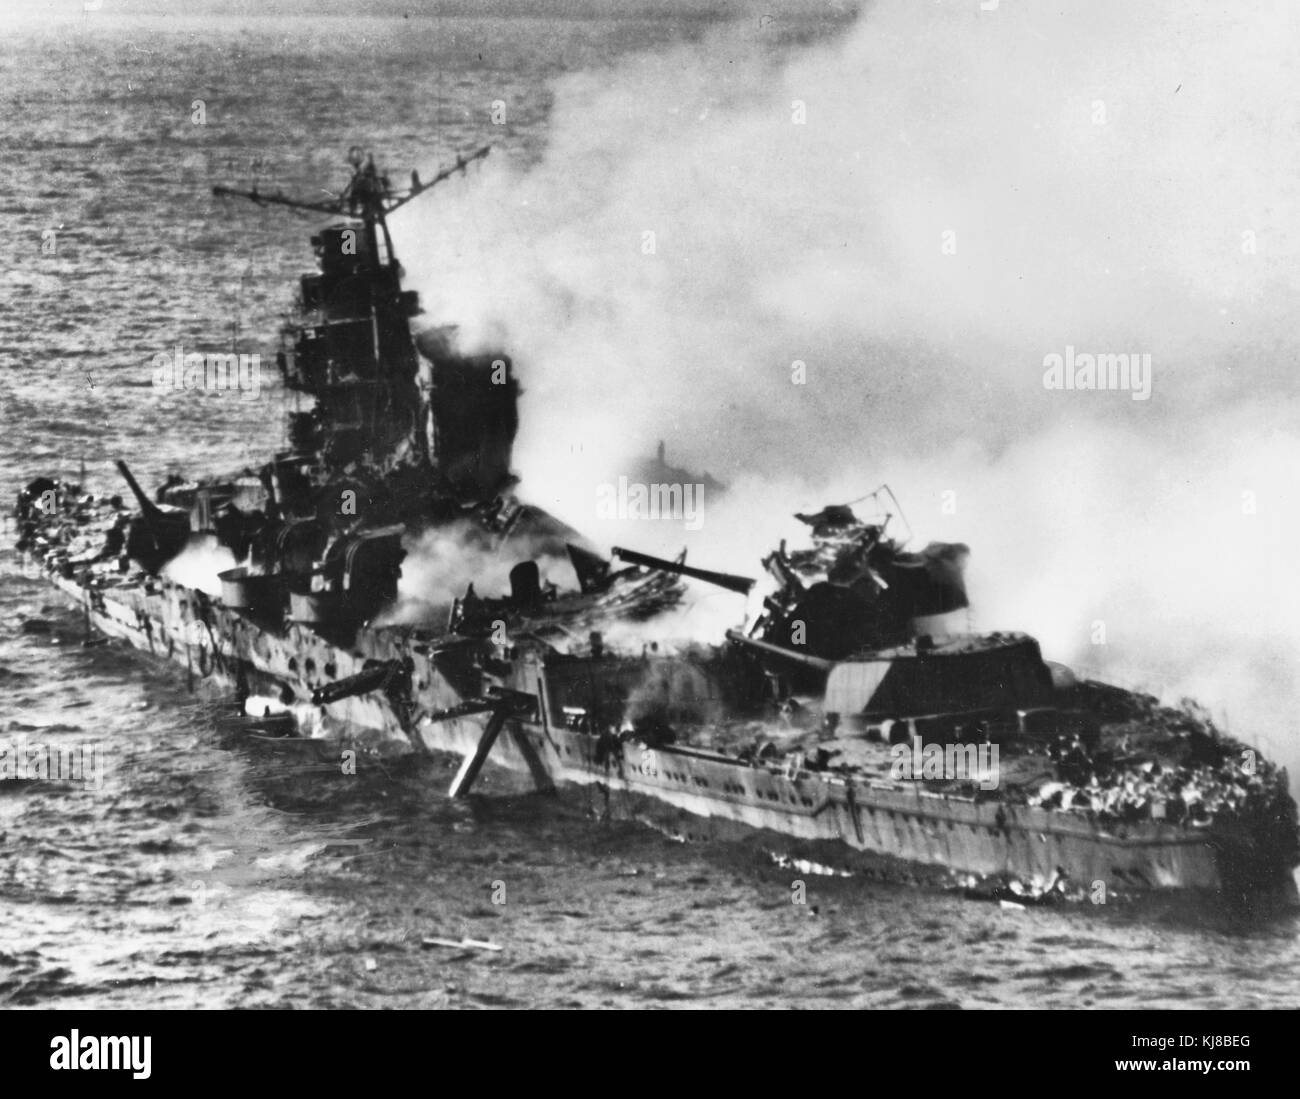 The burning Japanese cruiser Mikuma, 6 June 1942. Japanese heavy cruiser Mikuma, photographed from a USS Enterprise - Stock Image